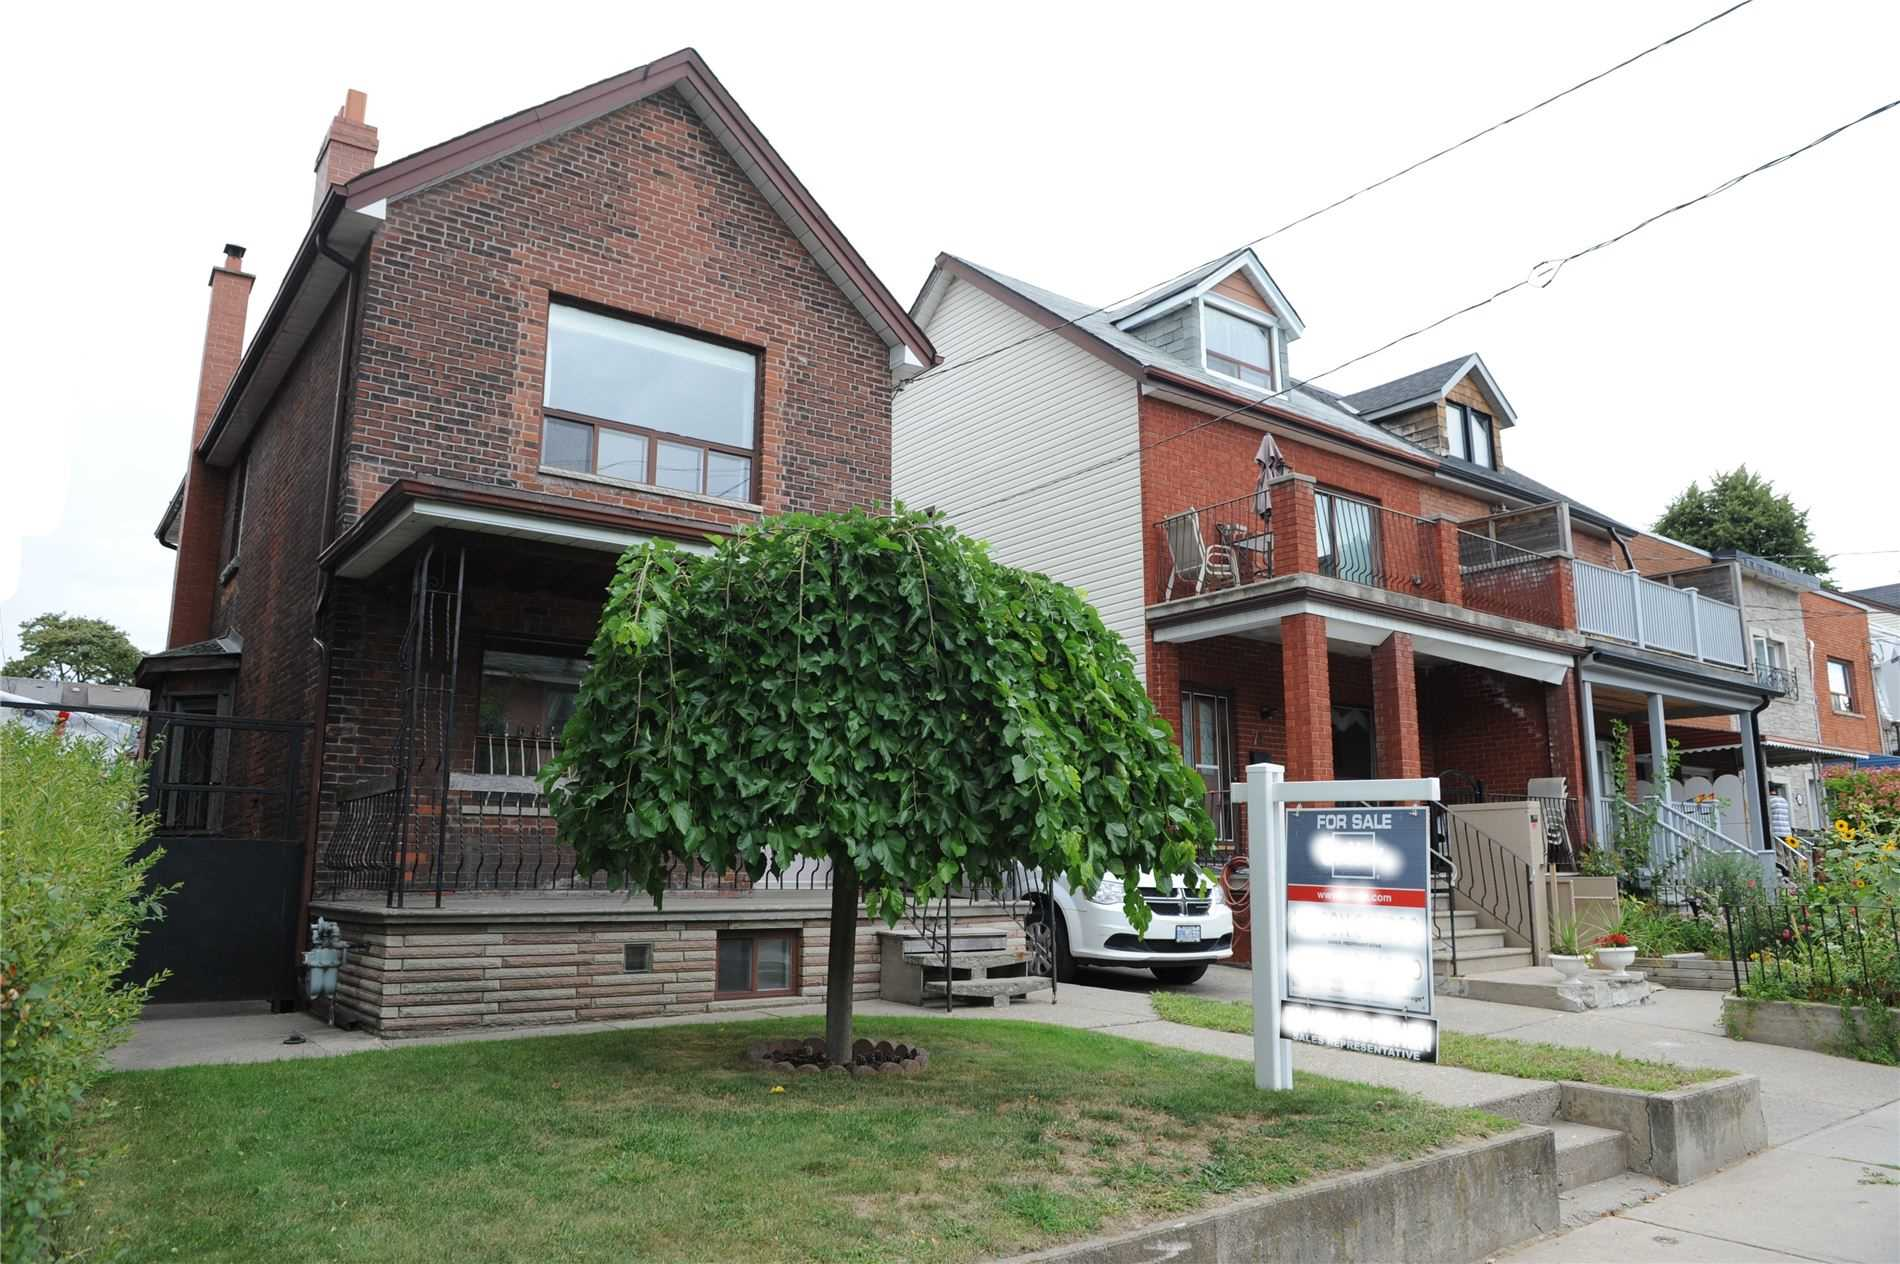 72 Margueretta St, Toronto, Ontario M6H 3S3, 3 Bedrooms Bedrooms, 6 Rooms Rooms,2 BathroomsBathrooms,Detached,For Sale,Margueretta,C4901040